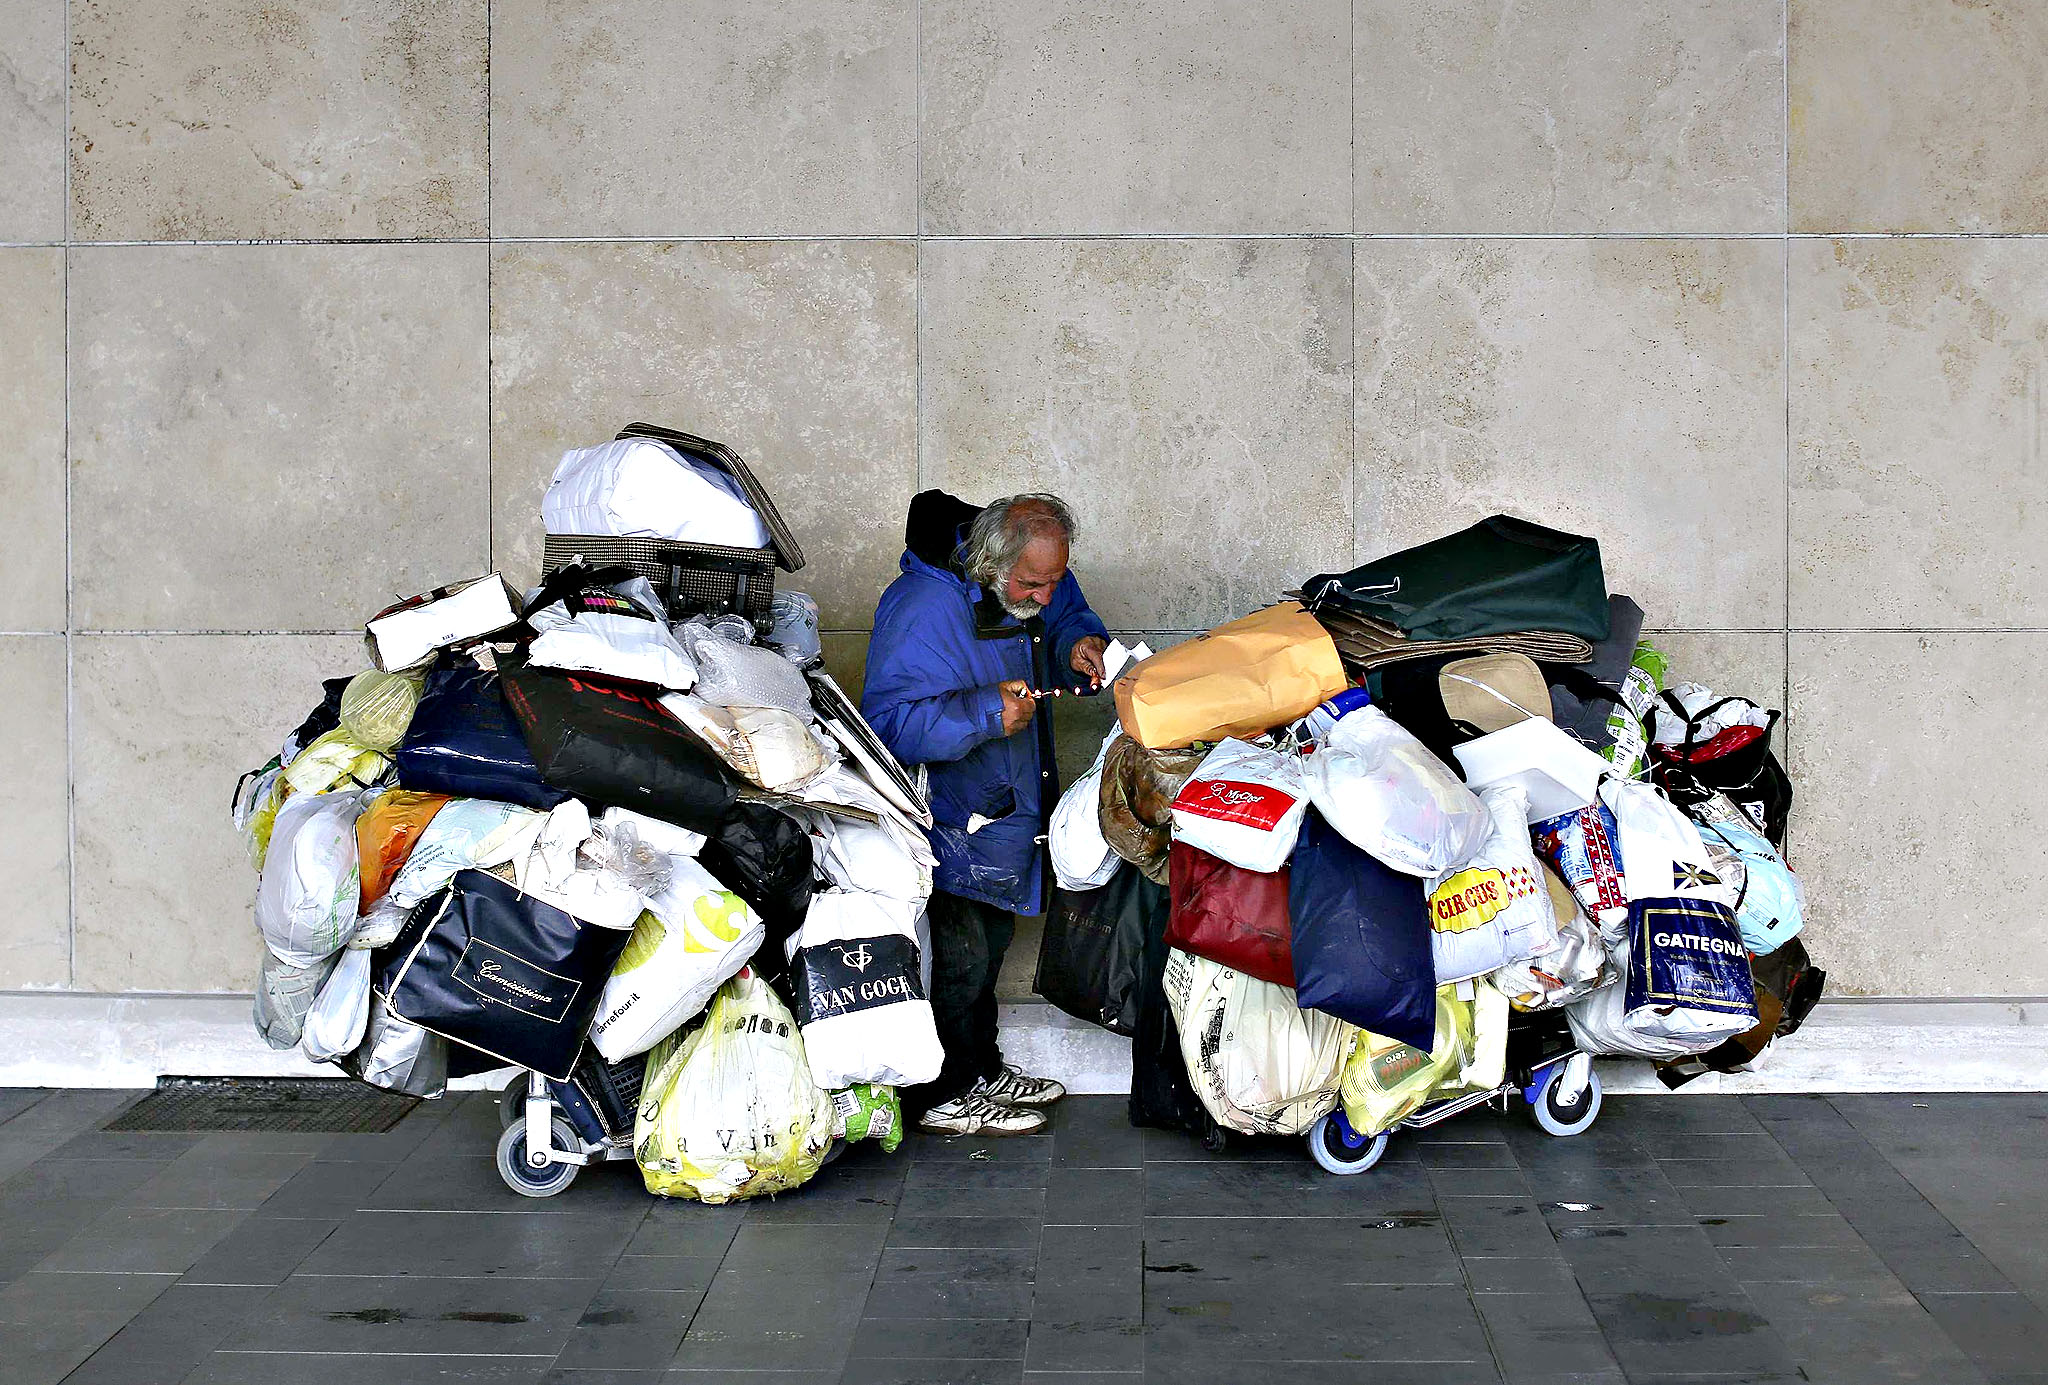 A man stands between two trolleys loaded with bags containing his clothes and personal belongings outside the entrance of Fiumicino international airport in Rome...A man stands between two trolleys loaded with bags containing his clothes and personal belongings outside the entrance of Fiumicino international airport in Rome March 16, 2015.